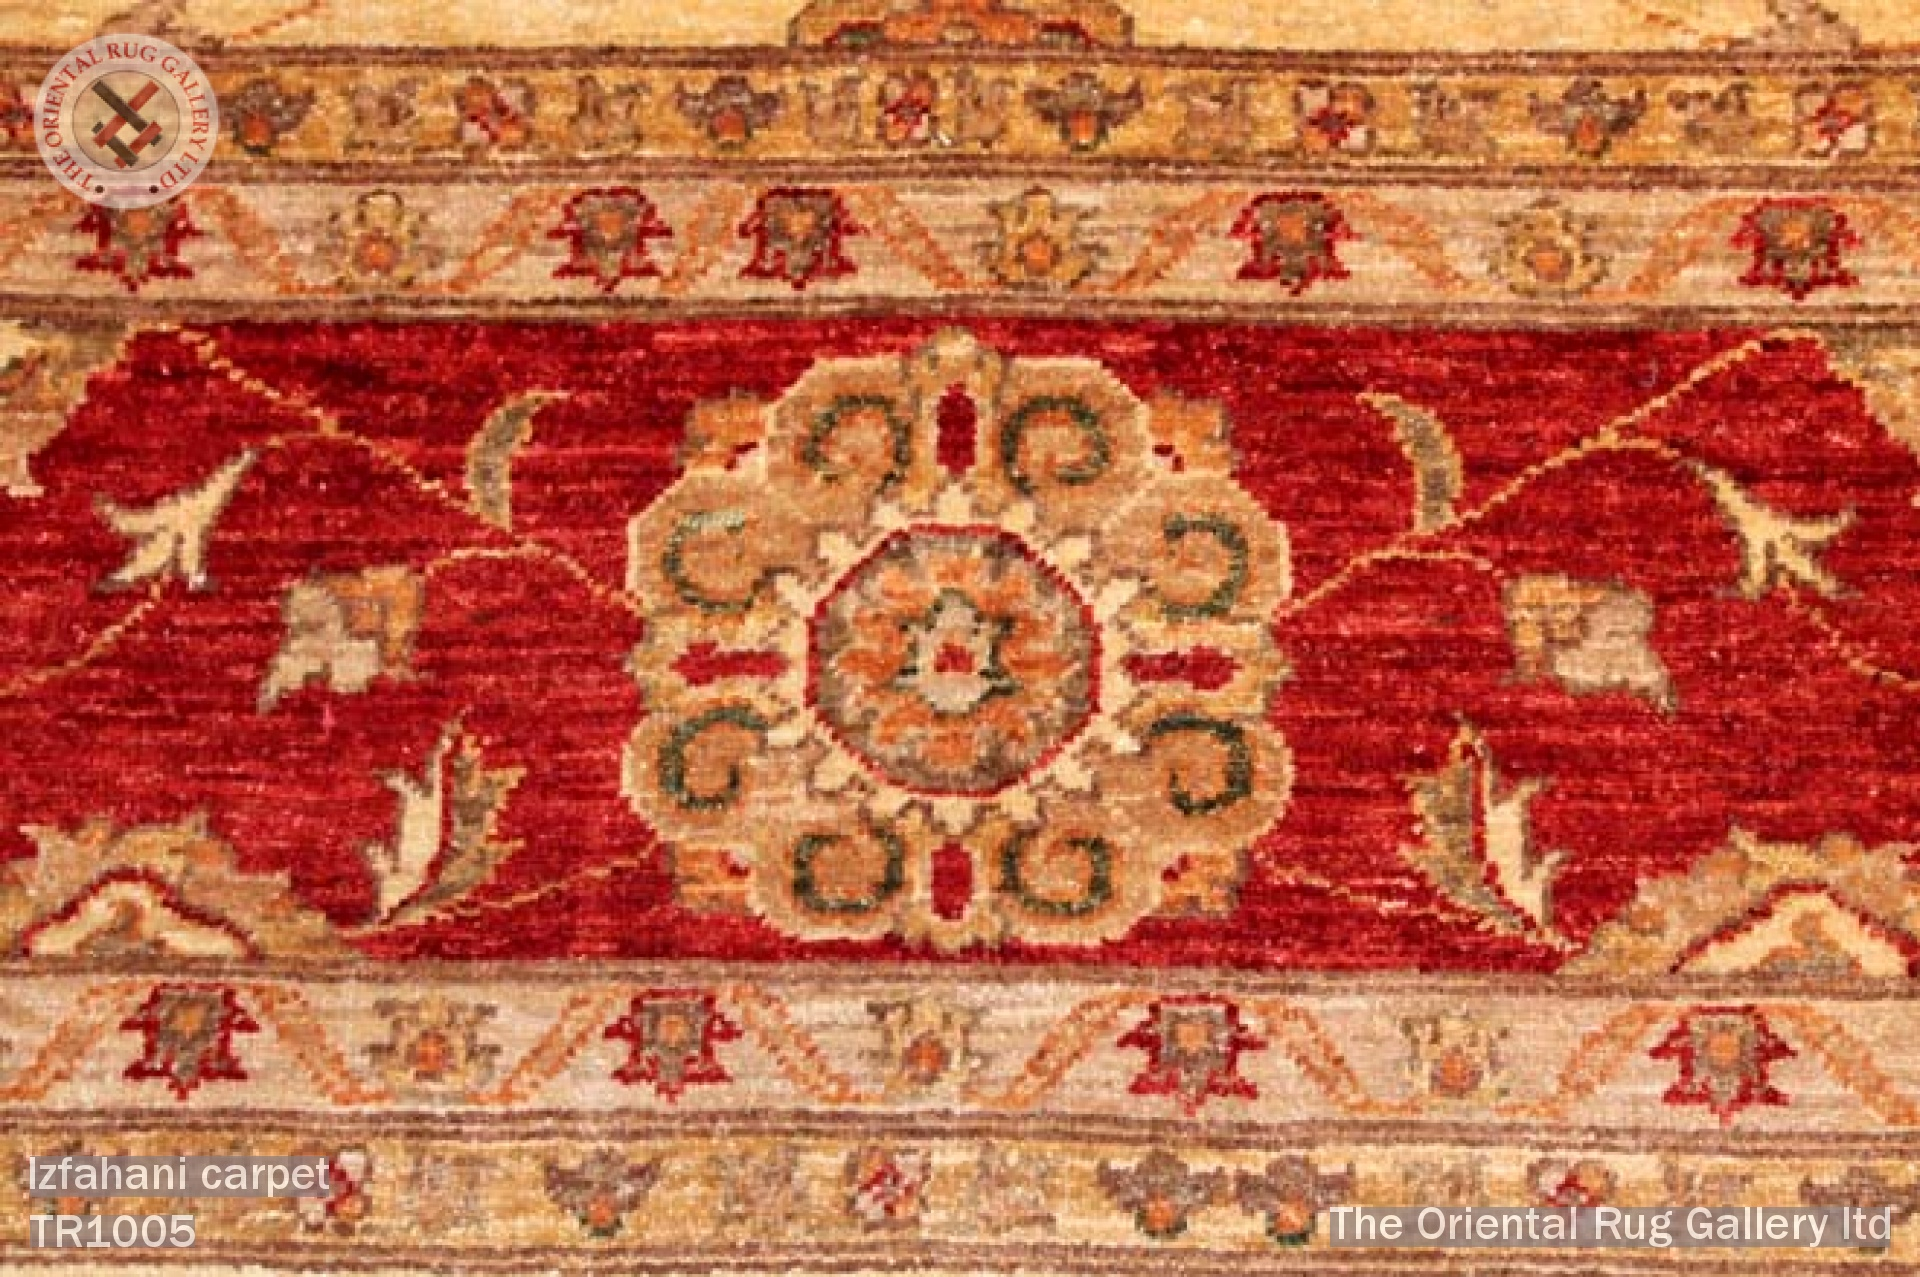 THE ORIENTAL RUG GALLERY LTD • RUGS & CARPETS GALLERY - Izfahani carpet - E Persia Afghanistan